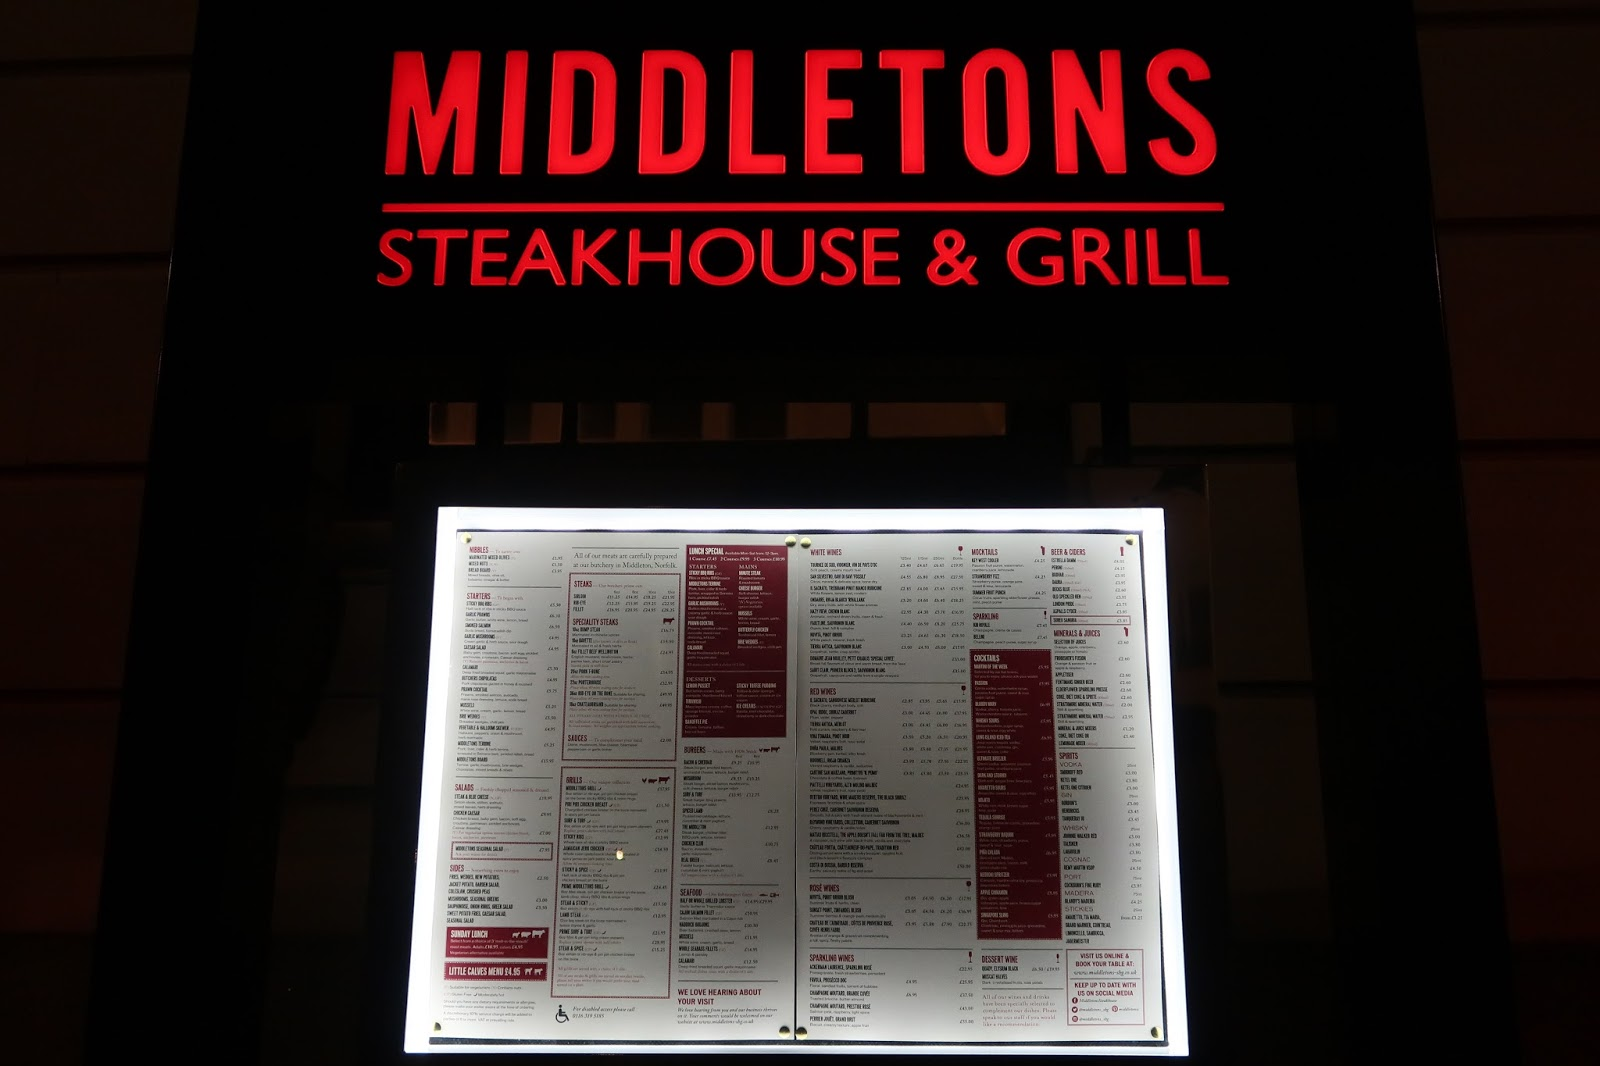 Middletons Steakhouse & Grill Restaurant Leicester Food Review